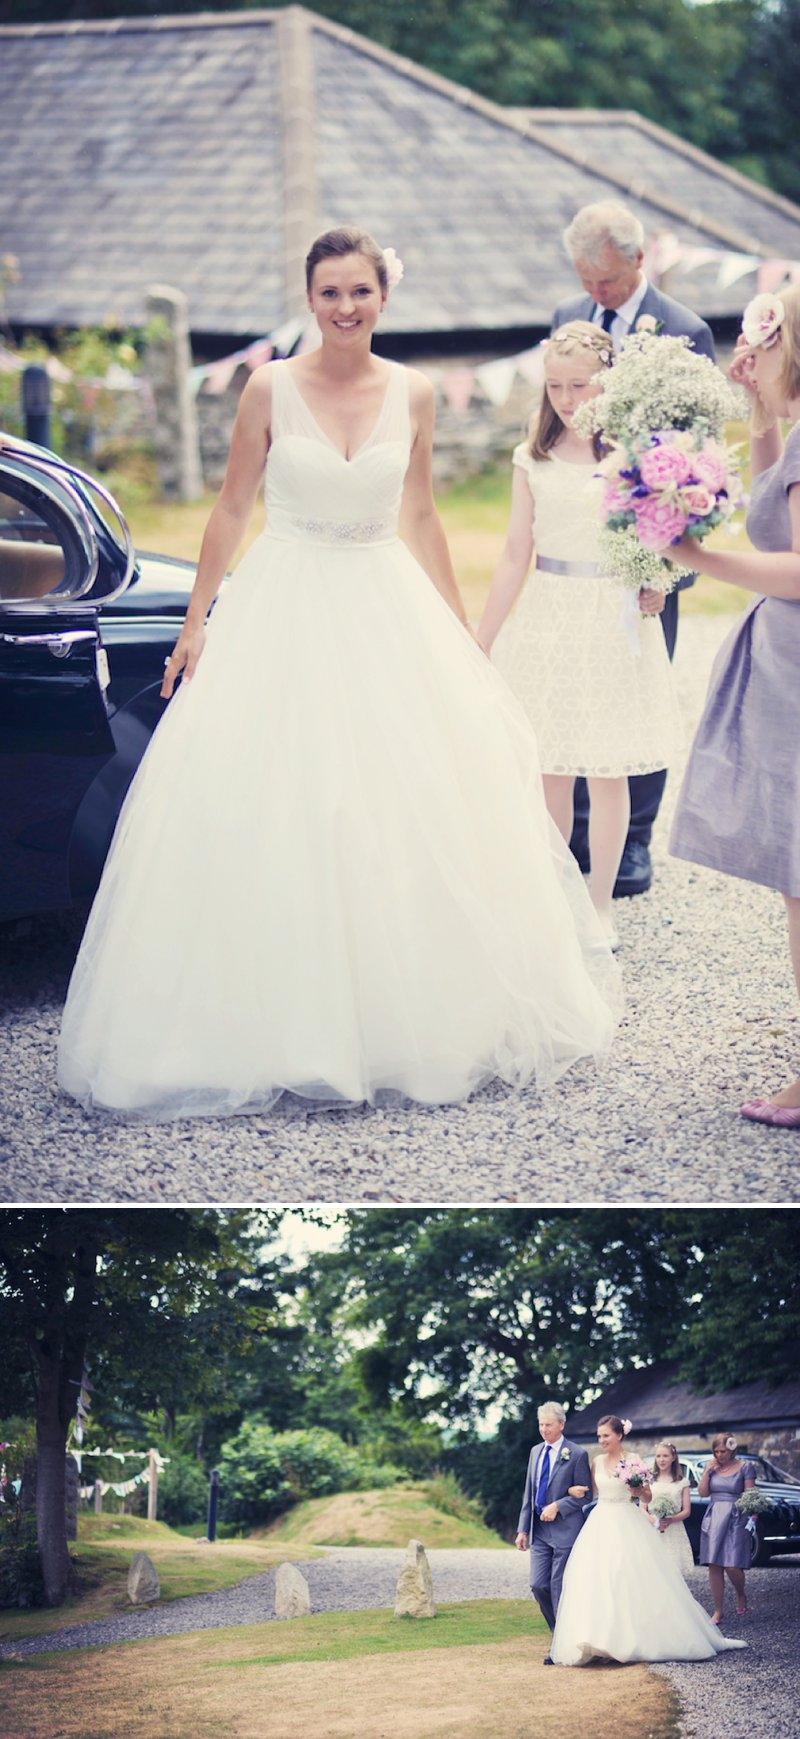 An Elegant Country Wedding At The Green Cornwall With